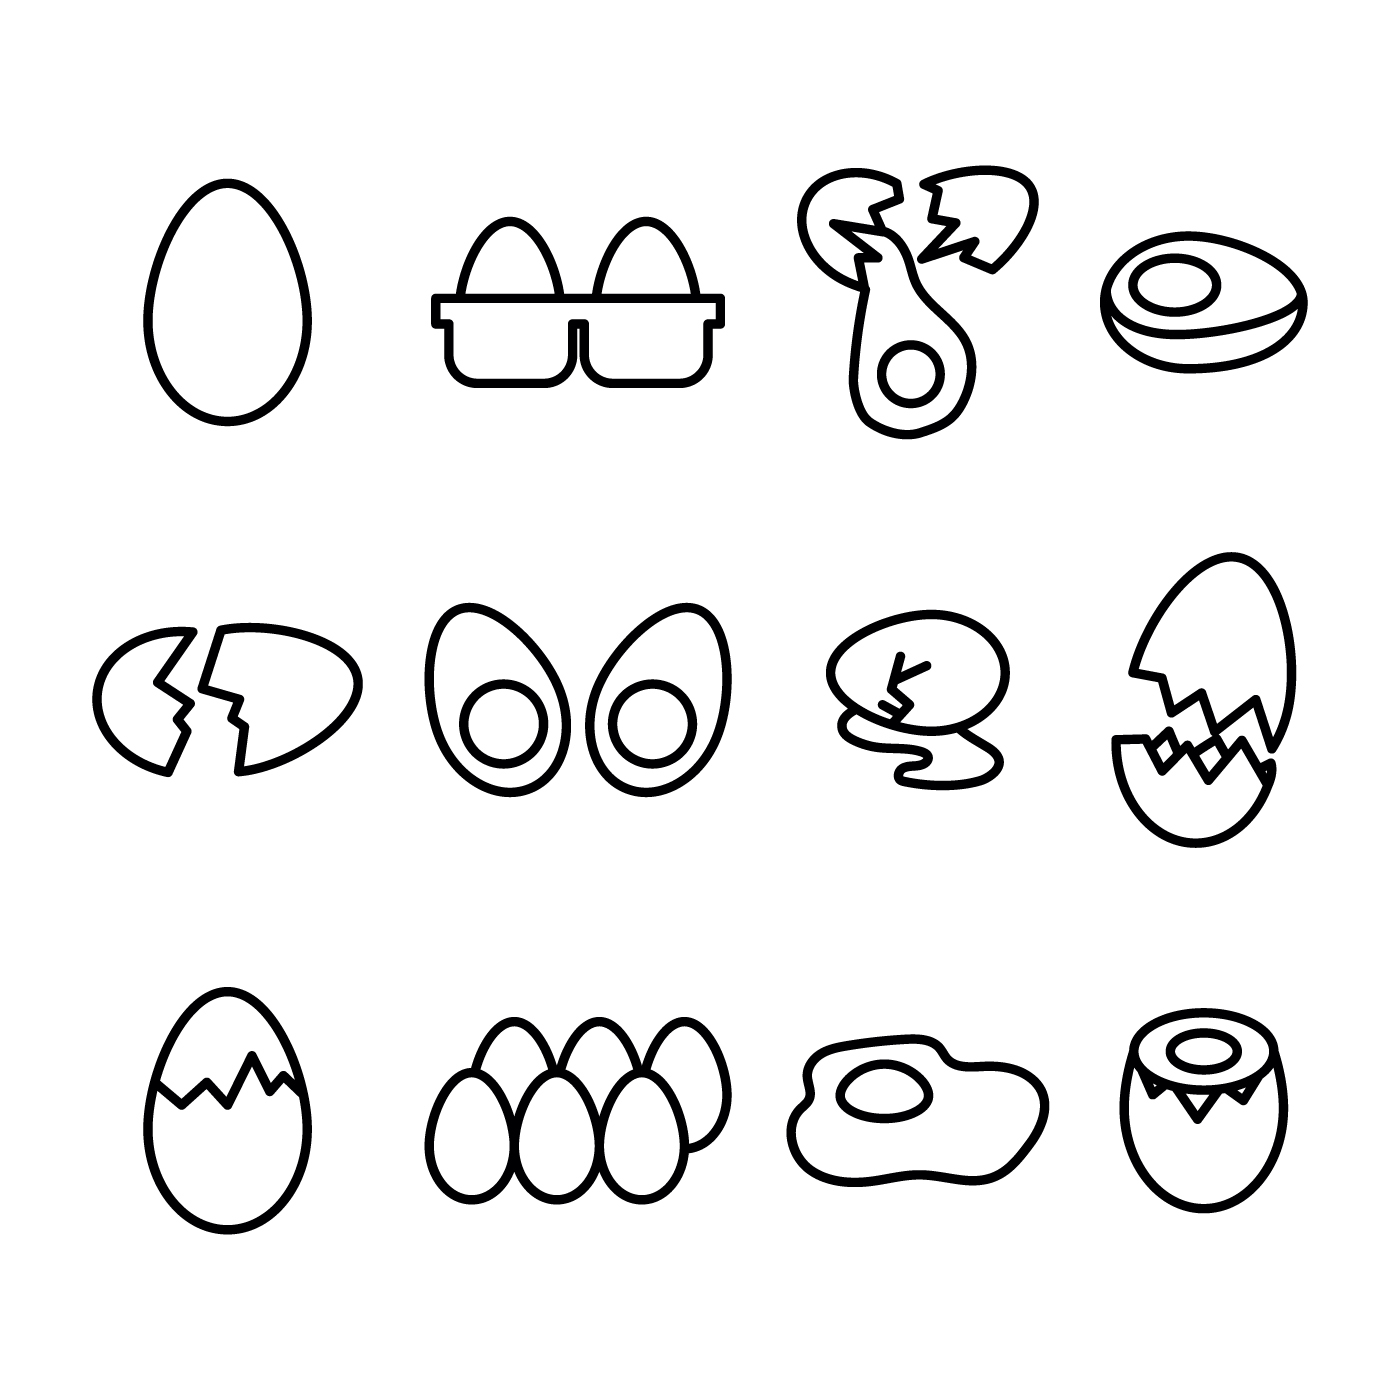 Outlined Eggs Icons - Download Free Vector Art, Stock Graphics & Images